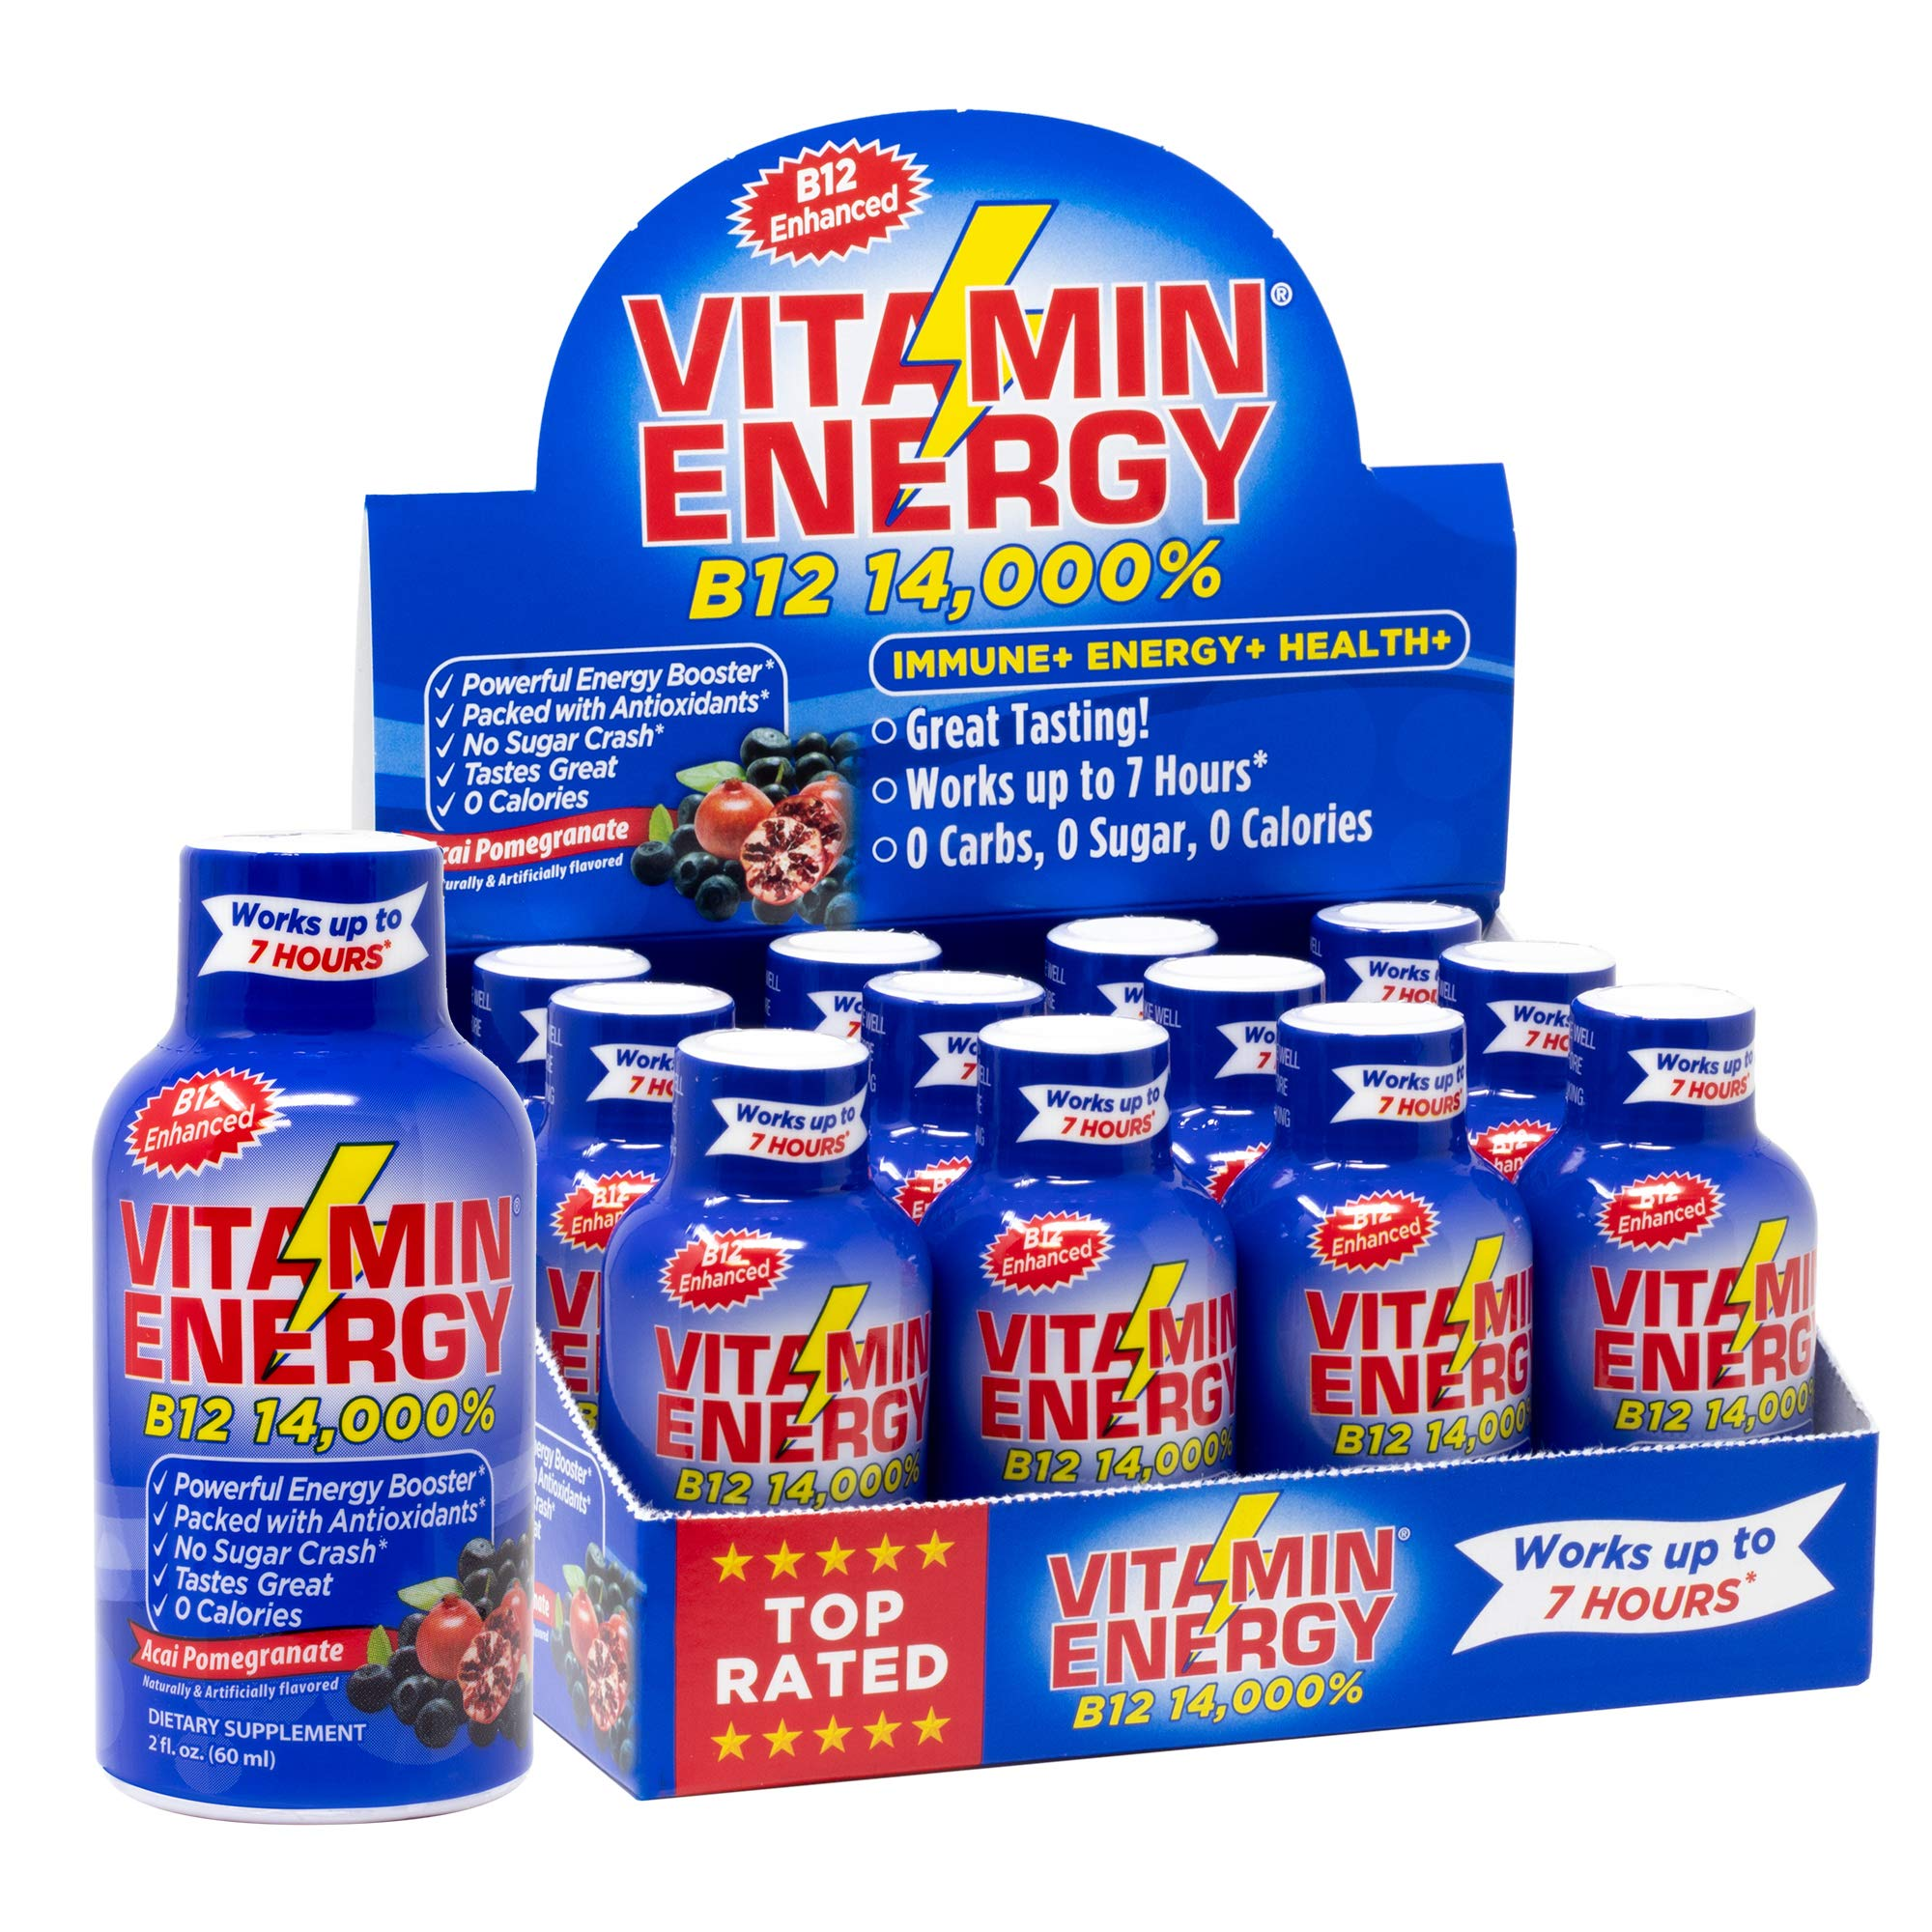 Vitamin Energy Shots - Energy Lasts up to 7+ Hours* | B12 14,000% | Keto 0 Sugar, 0 Carbs, Great Tasting Acai Pomegranate (12 Pack) by Vitamin Energy